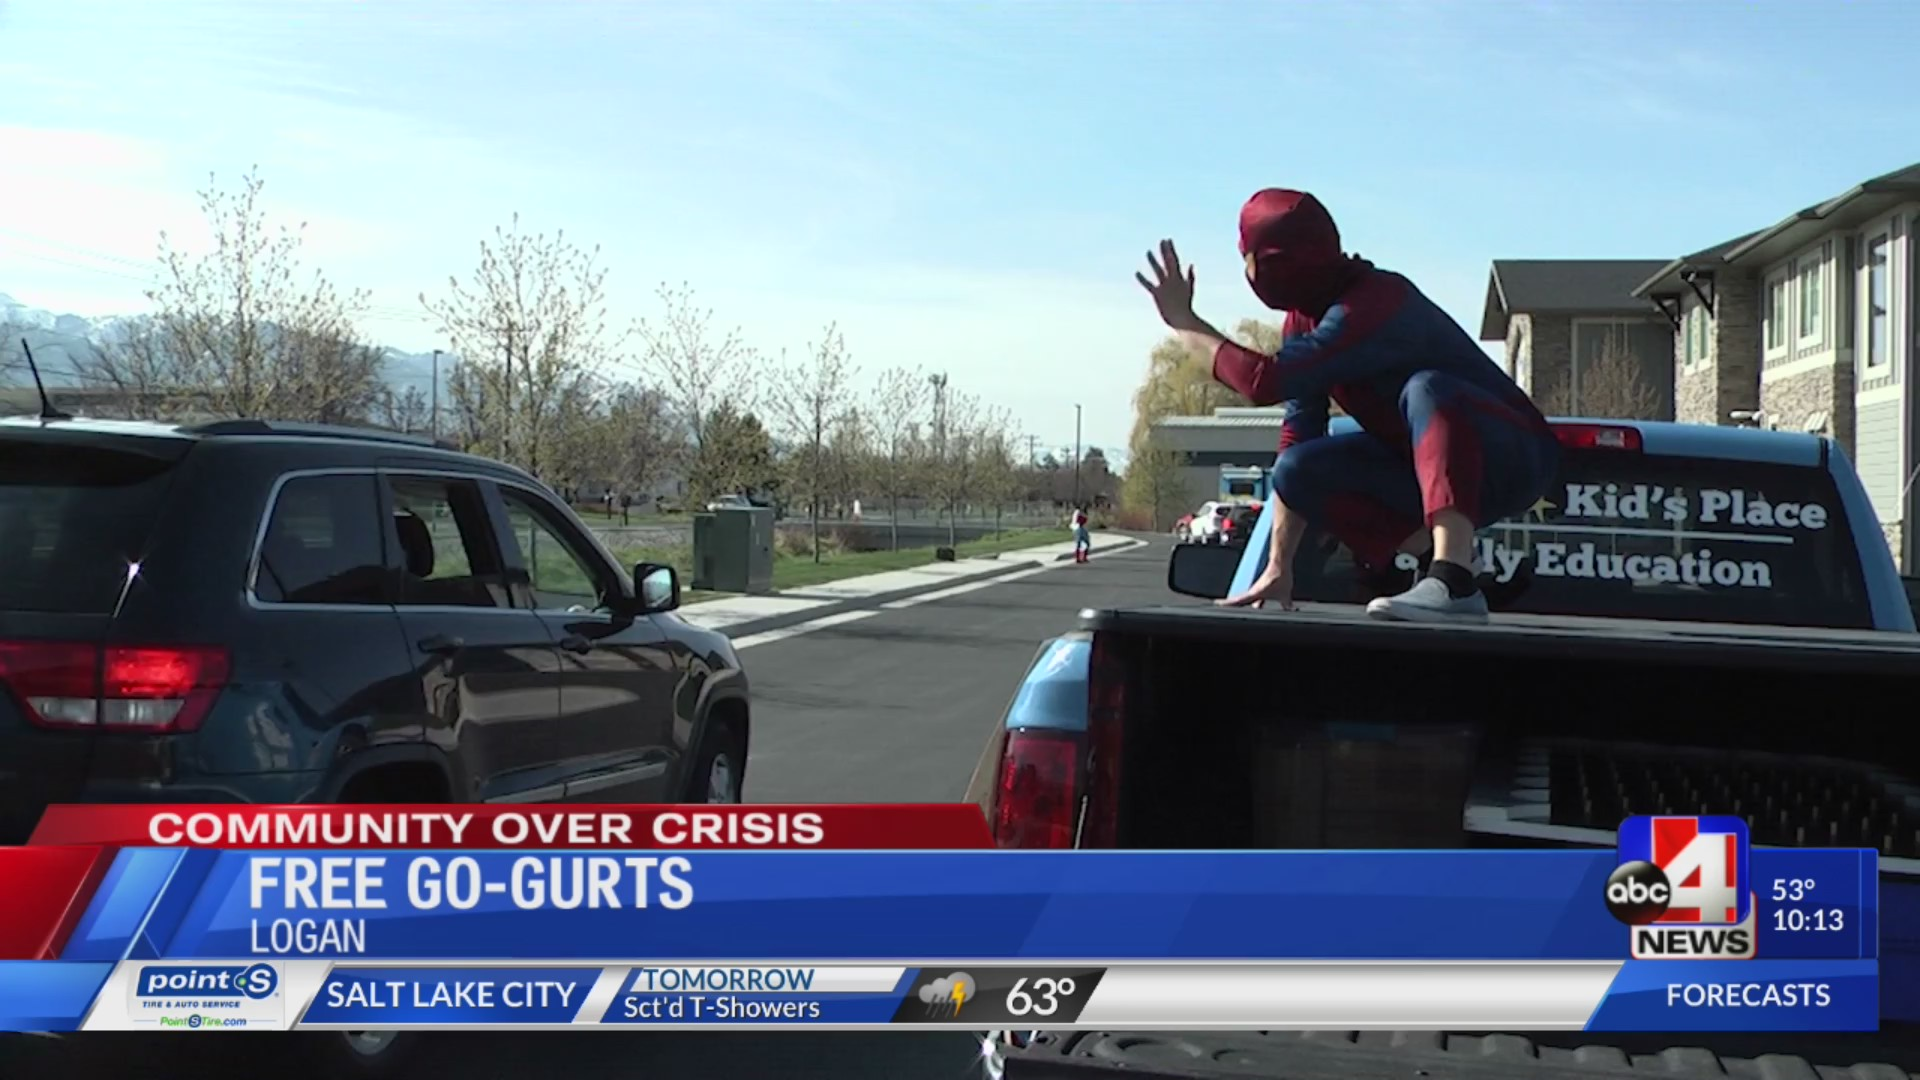 Spider-man helped distribute free Go-GURT to families at the Family Place in Logan Saturday.